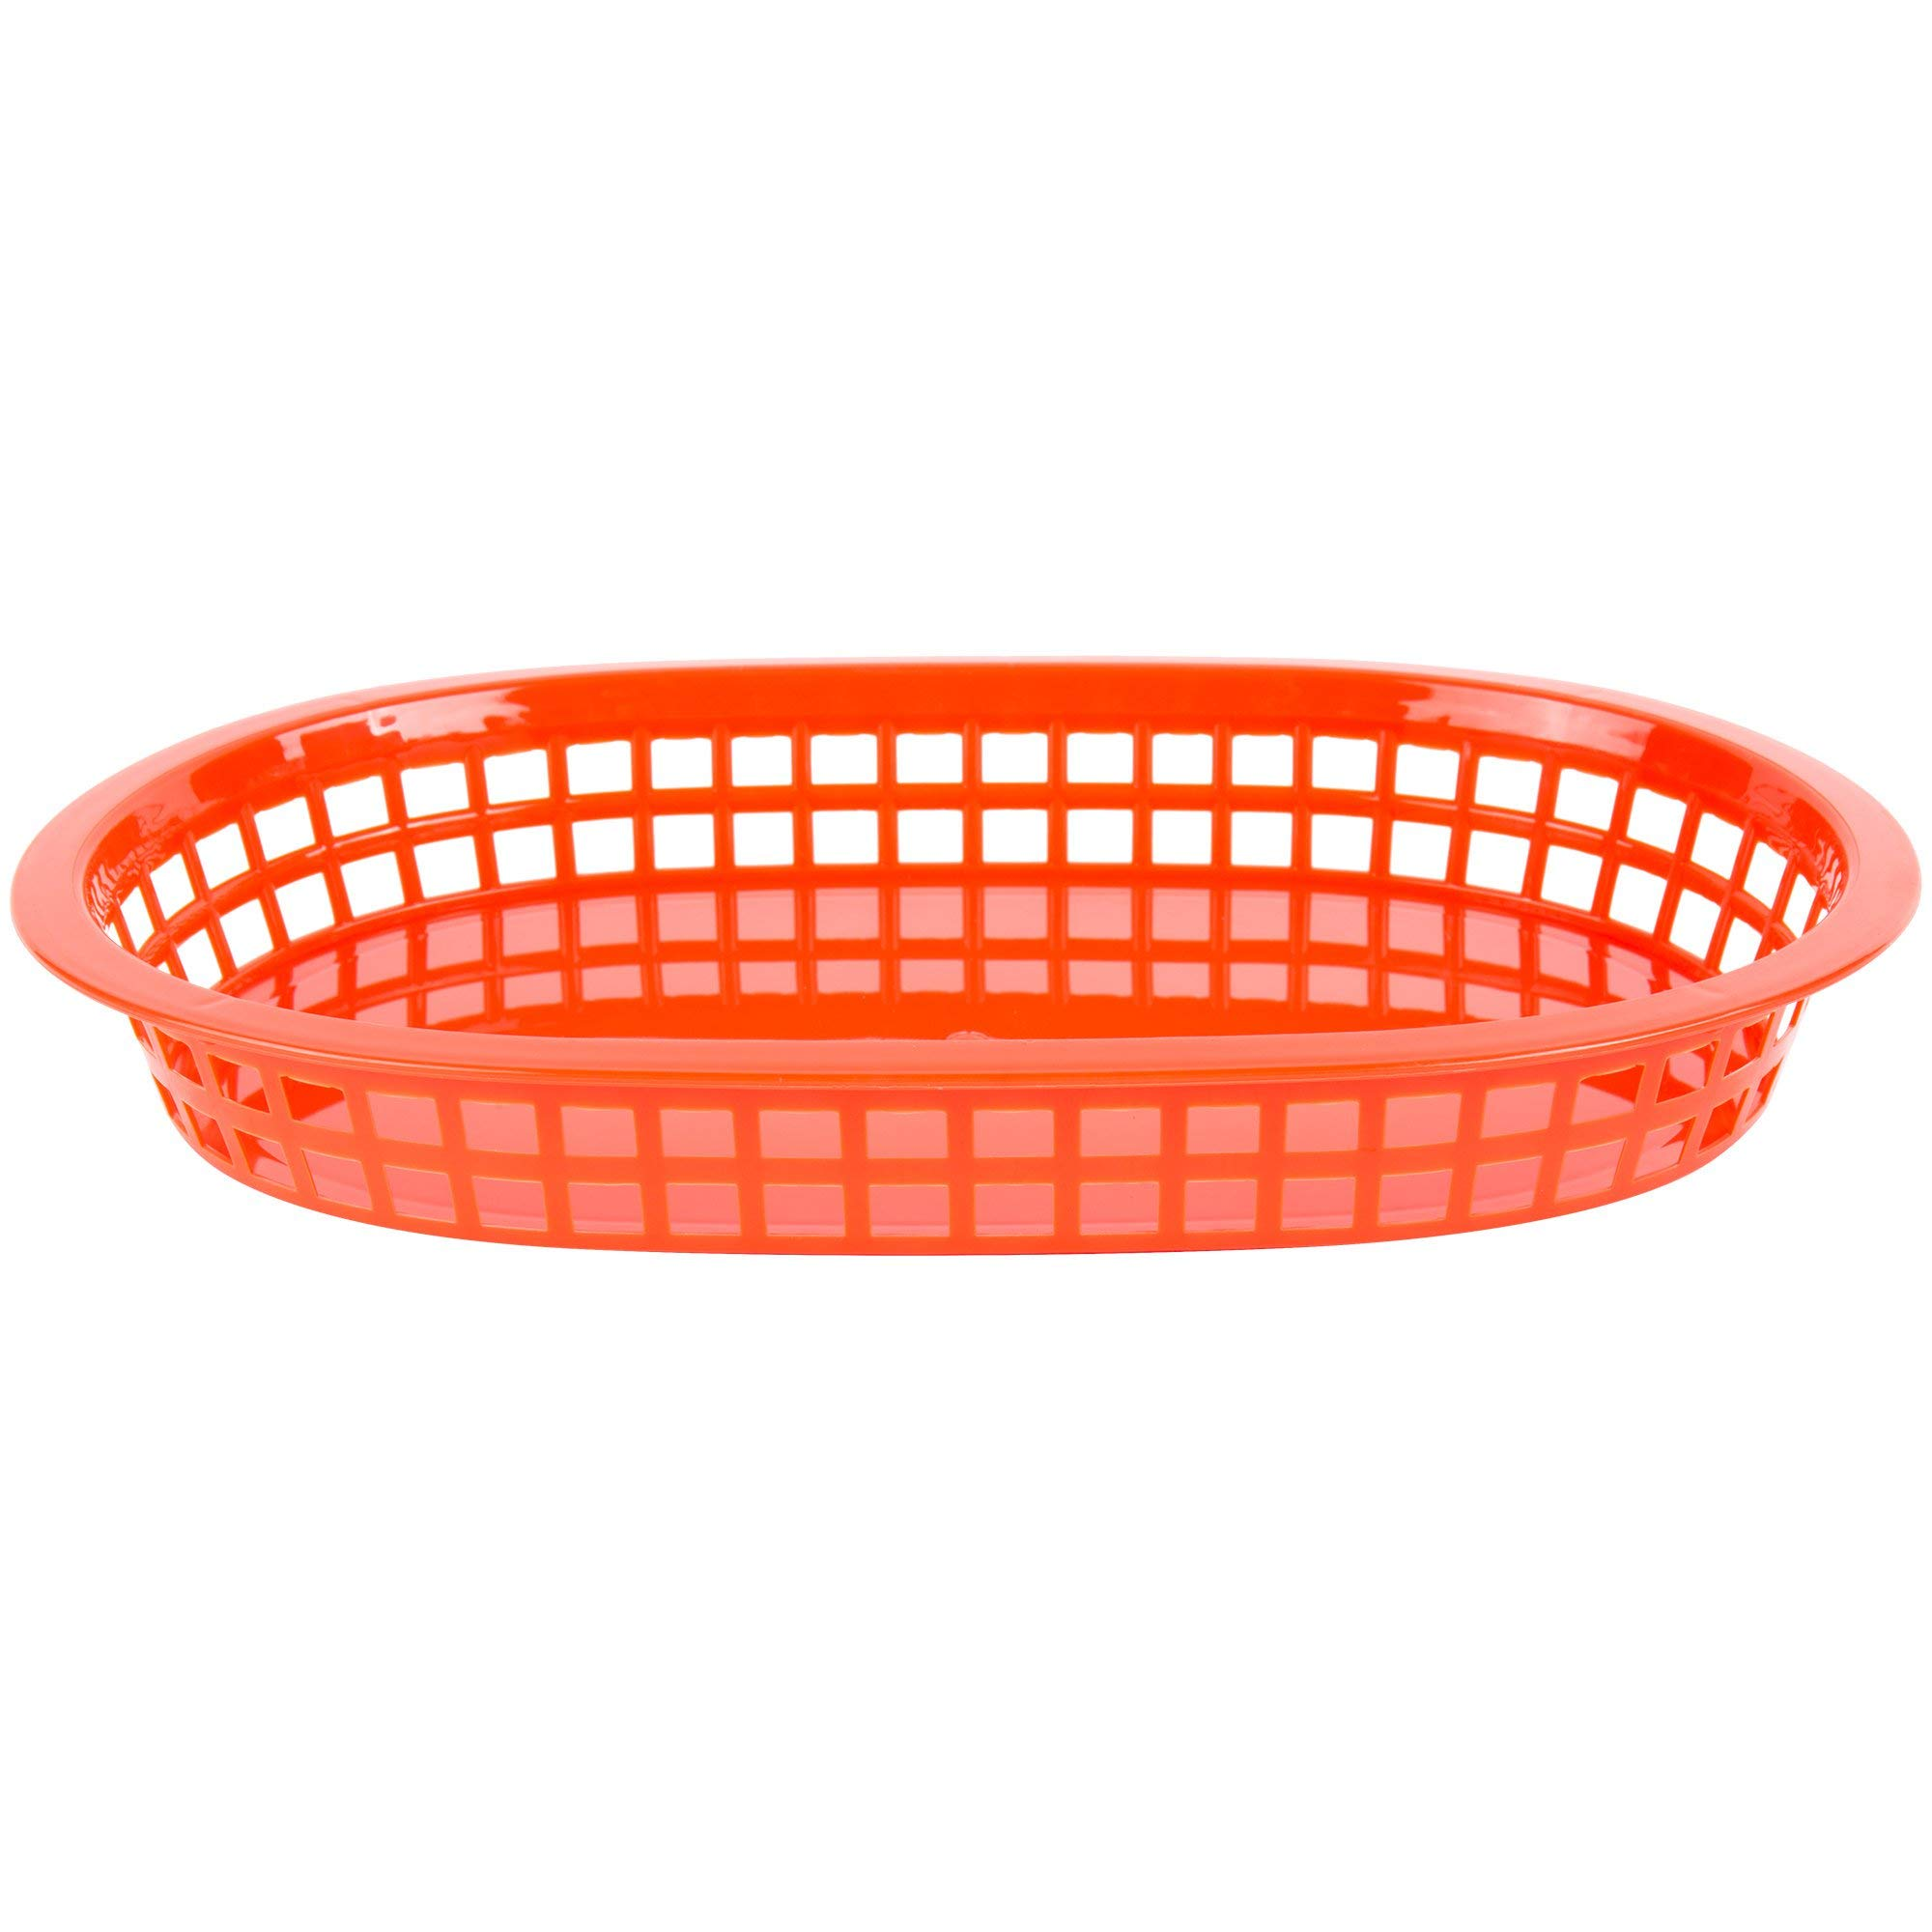 TableTop King 11'' x 7'' x 1 1/2'' Red Oval Plastic Fast Food Basket - 12/Pack